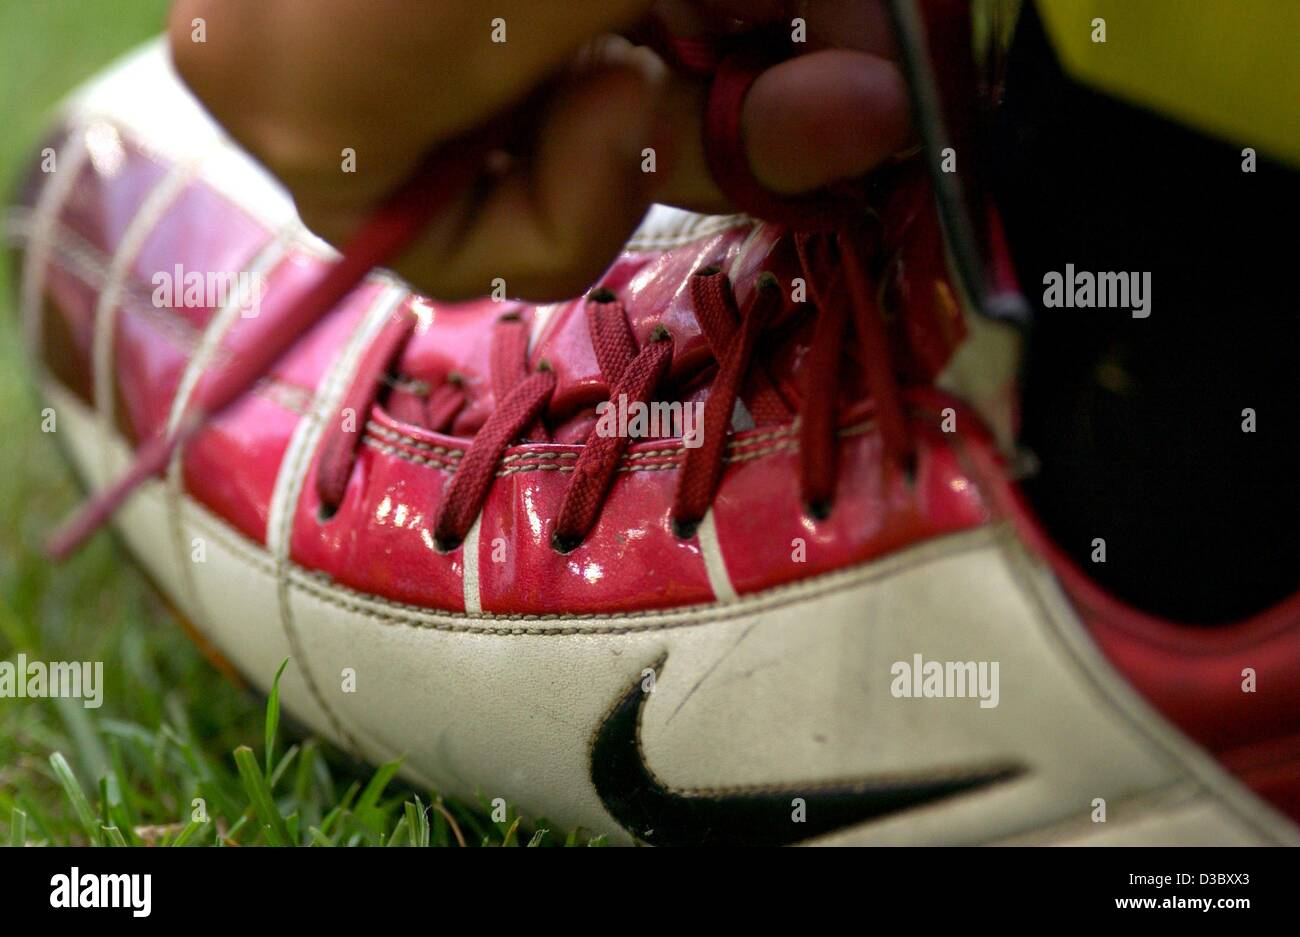 (dpa) - A soccer player of the team Borussia Dortmund ties his Nike trainers during a Bundesliga soccer game in - Stock Image